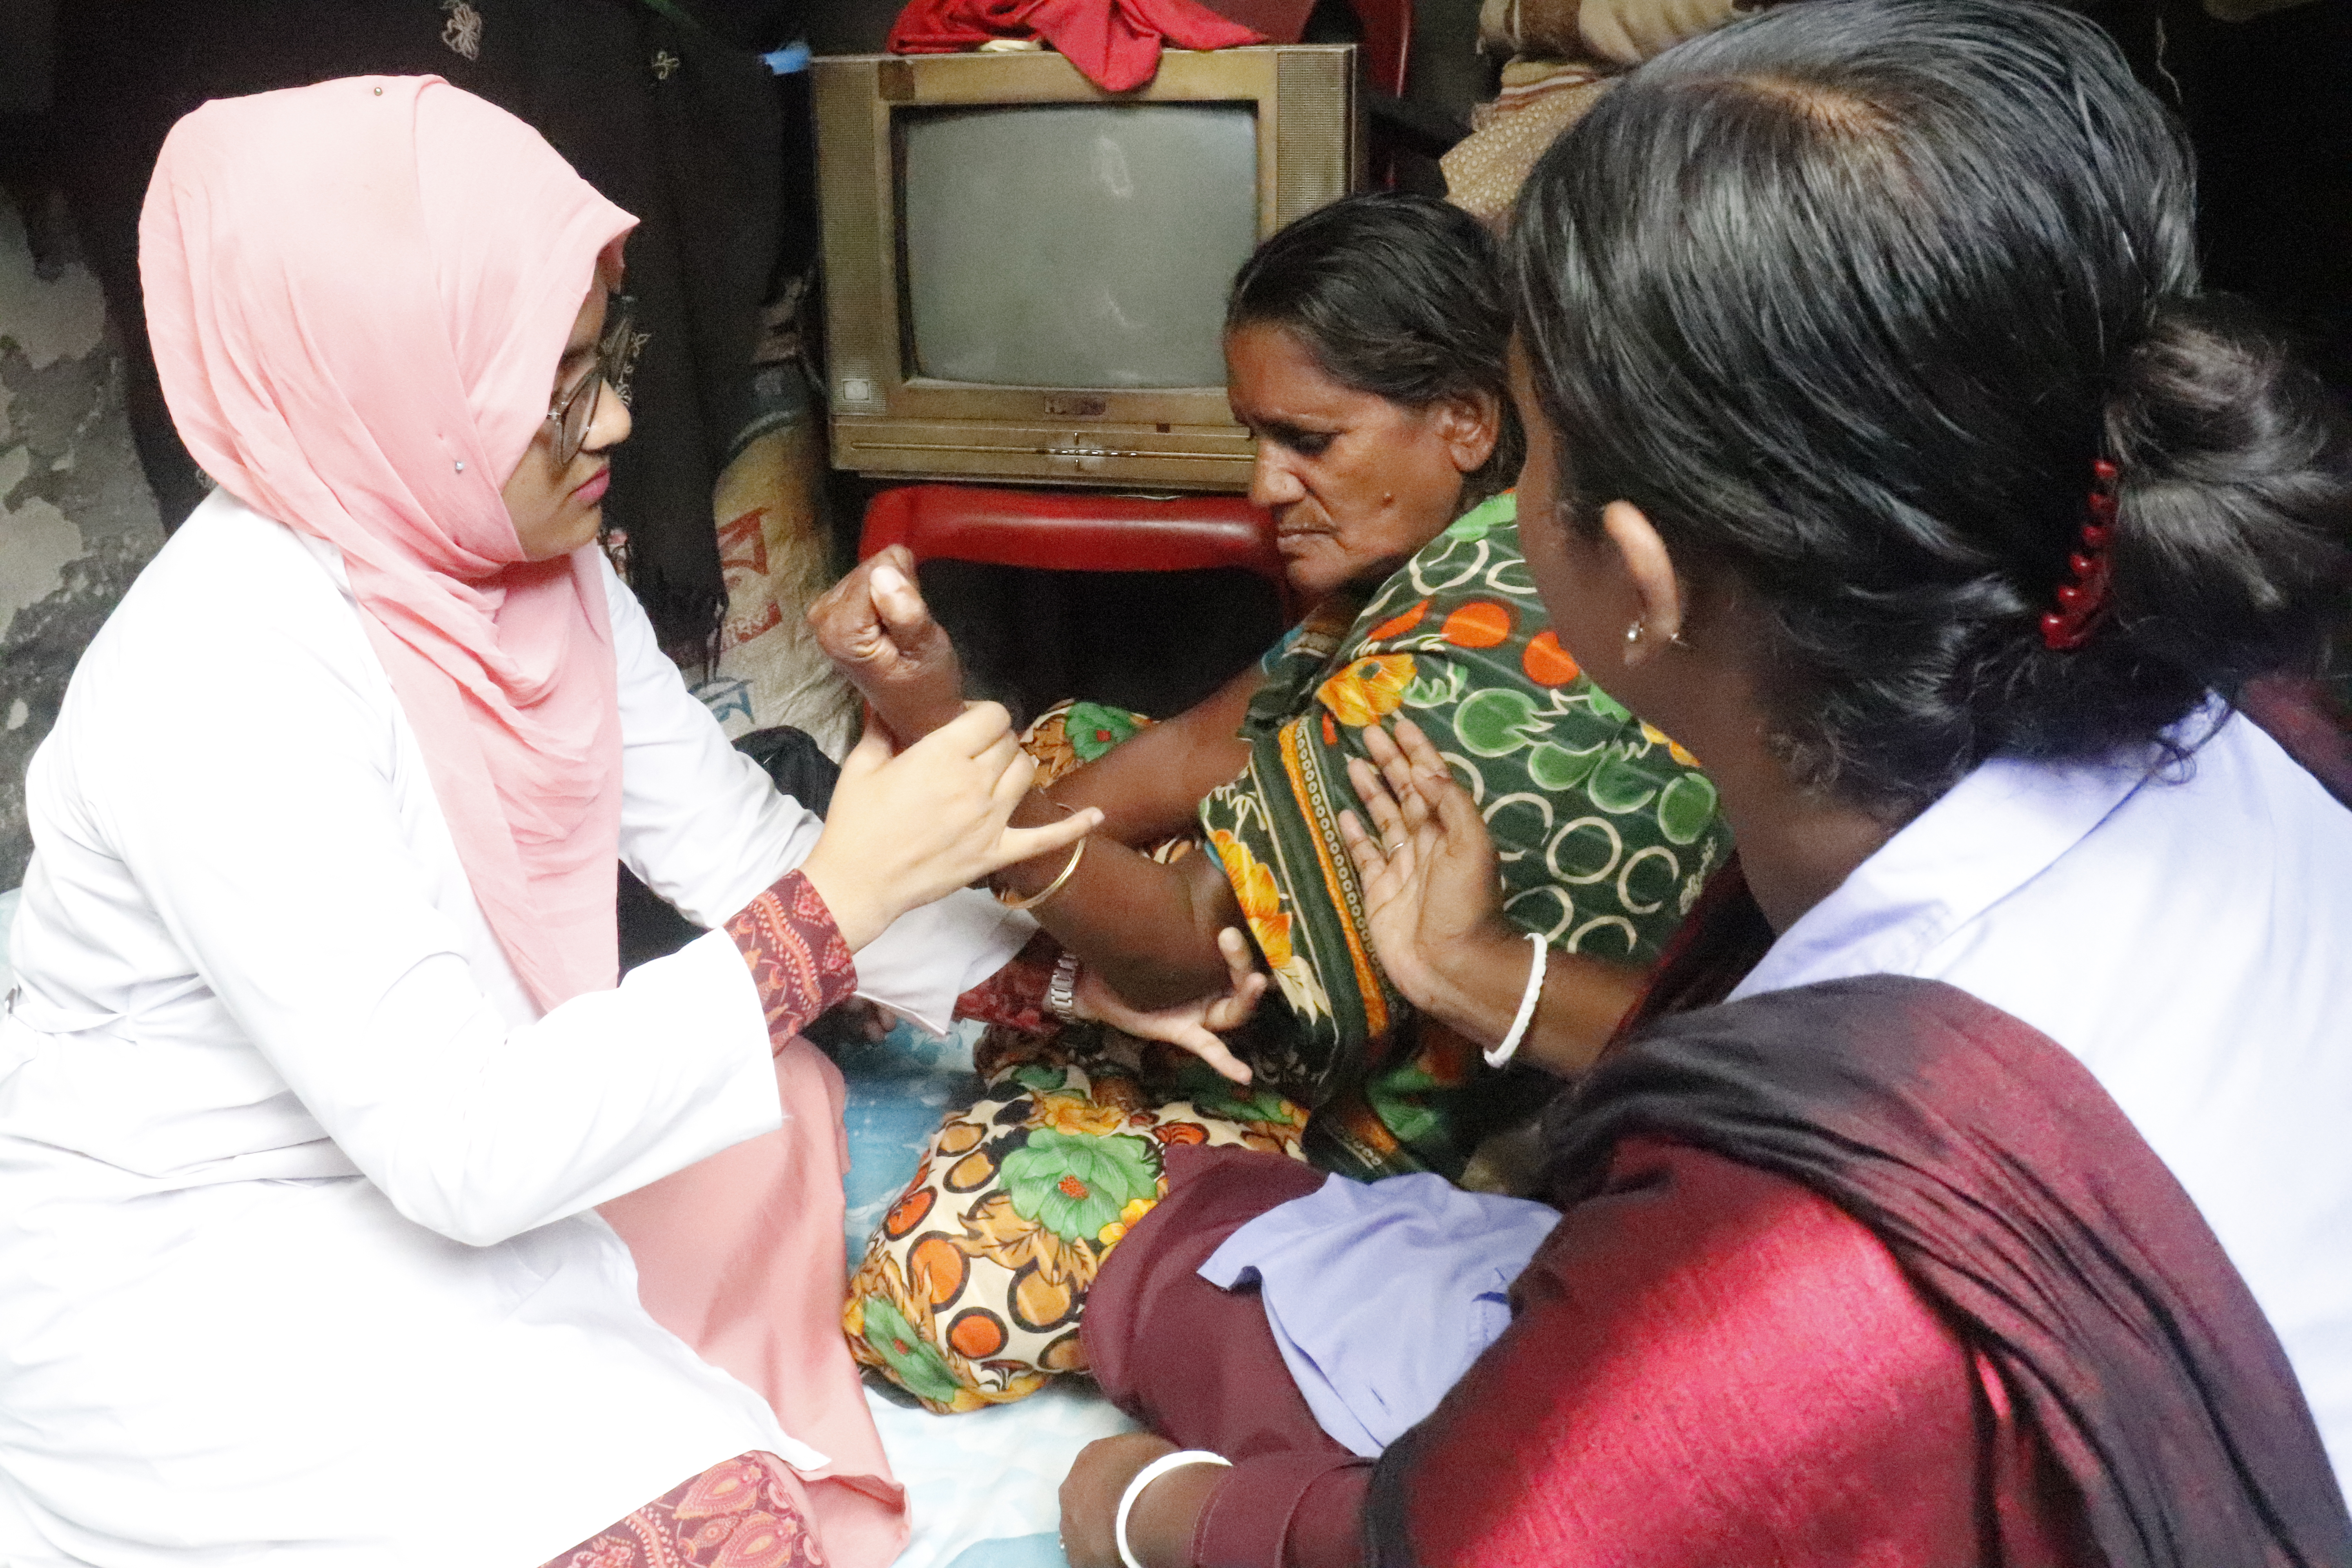 The restorative power of physiotherapy in palliative care in Bangladesh